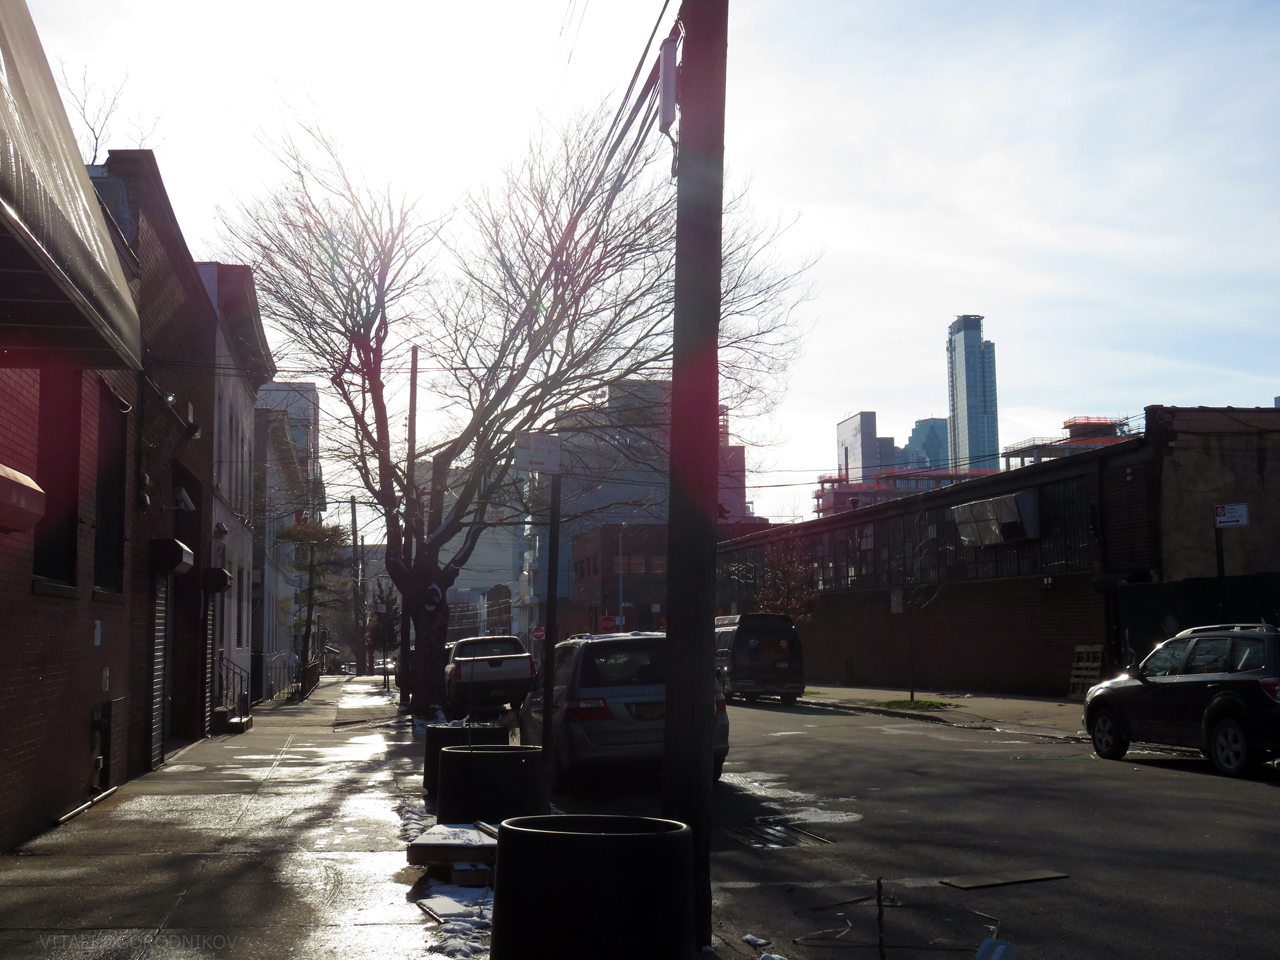 Looking south along 32nd Street. The Long Island City skyline is in the background.